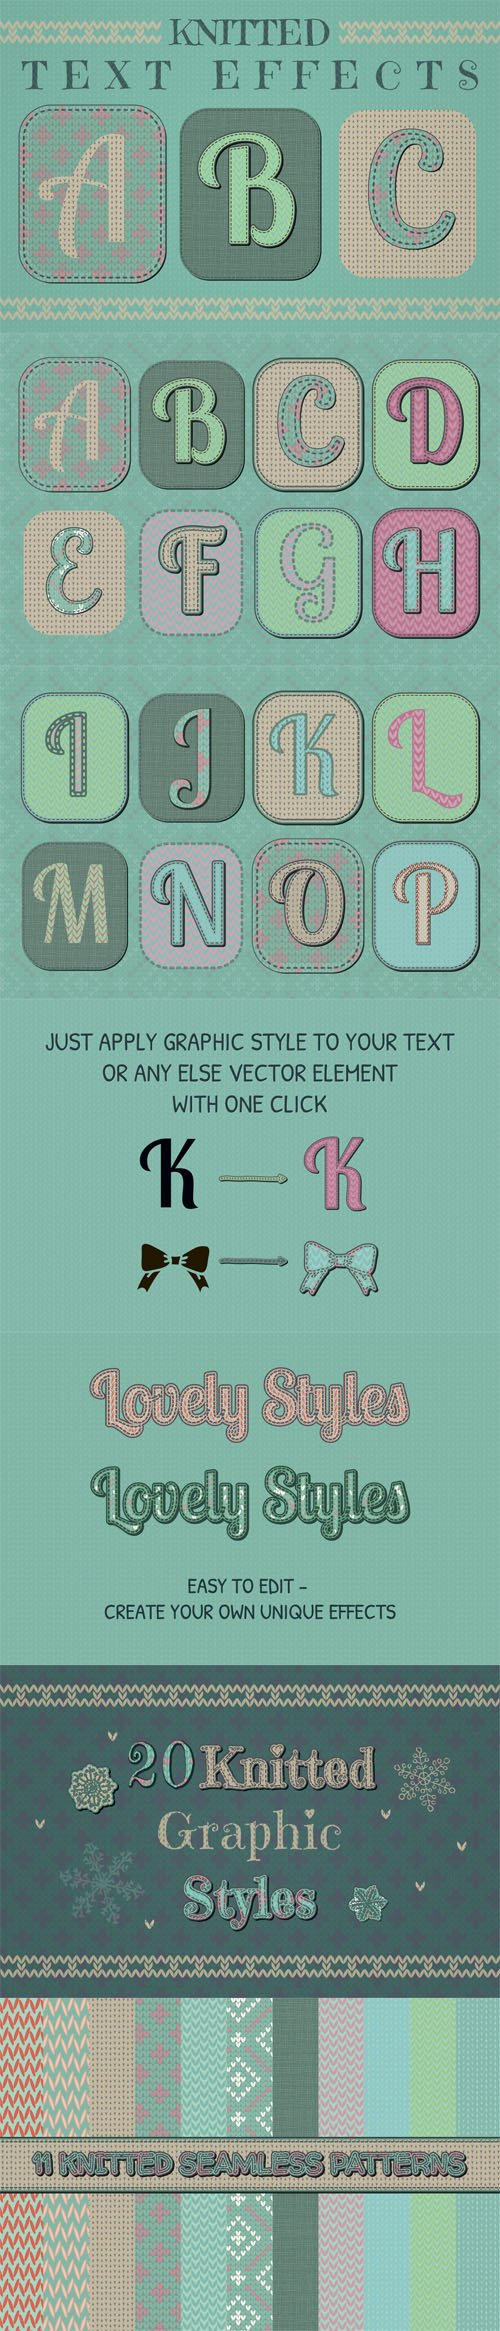 Knitted Text Effects - 20 Knitted Illustrator Graphic Styles